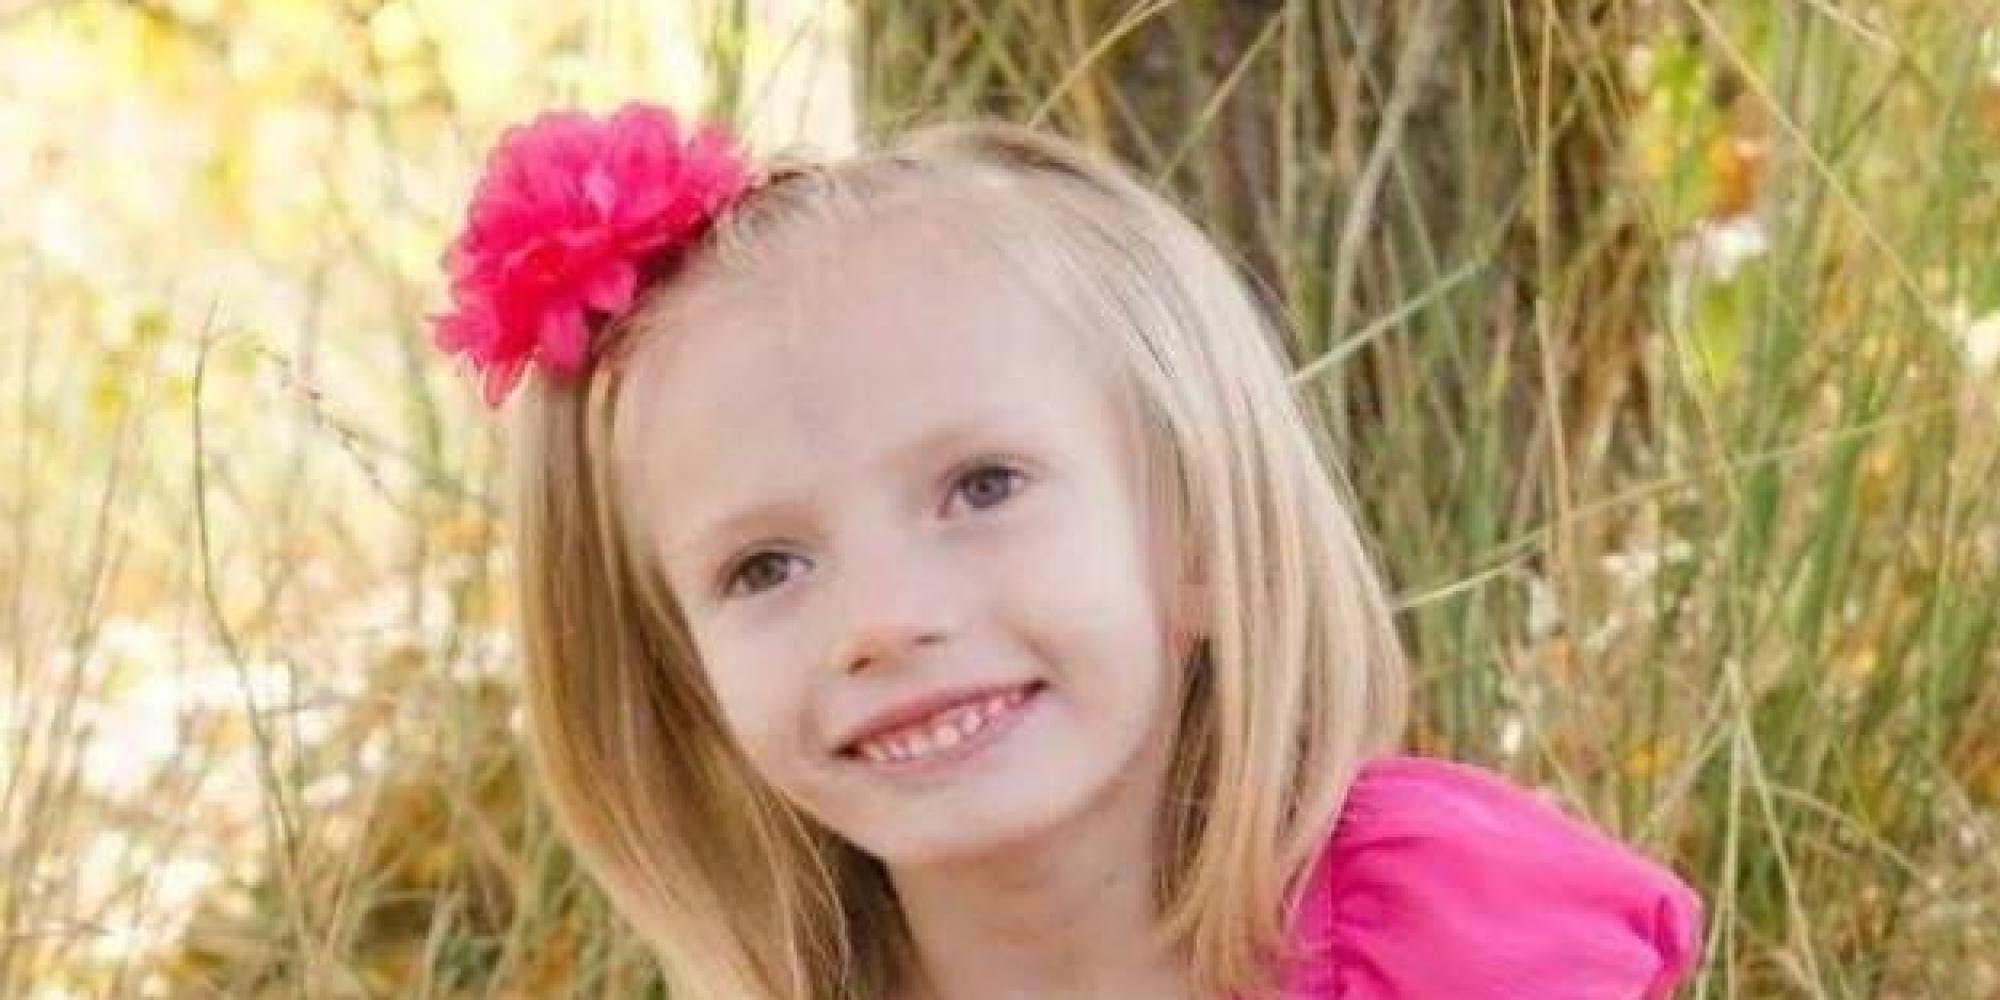 Dying 6 year old girl addie fausett receives hundreds of cards for